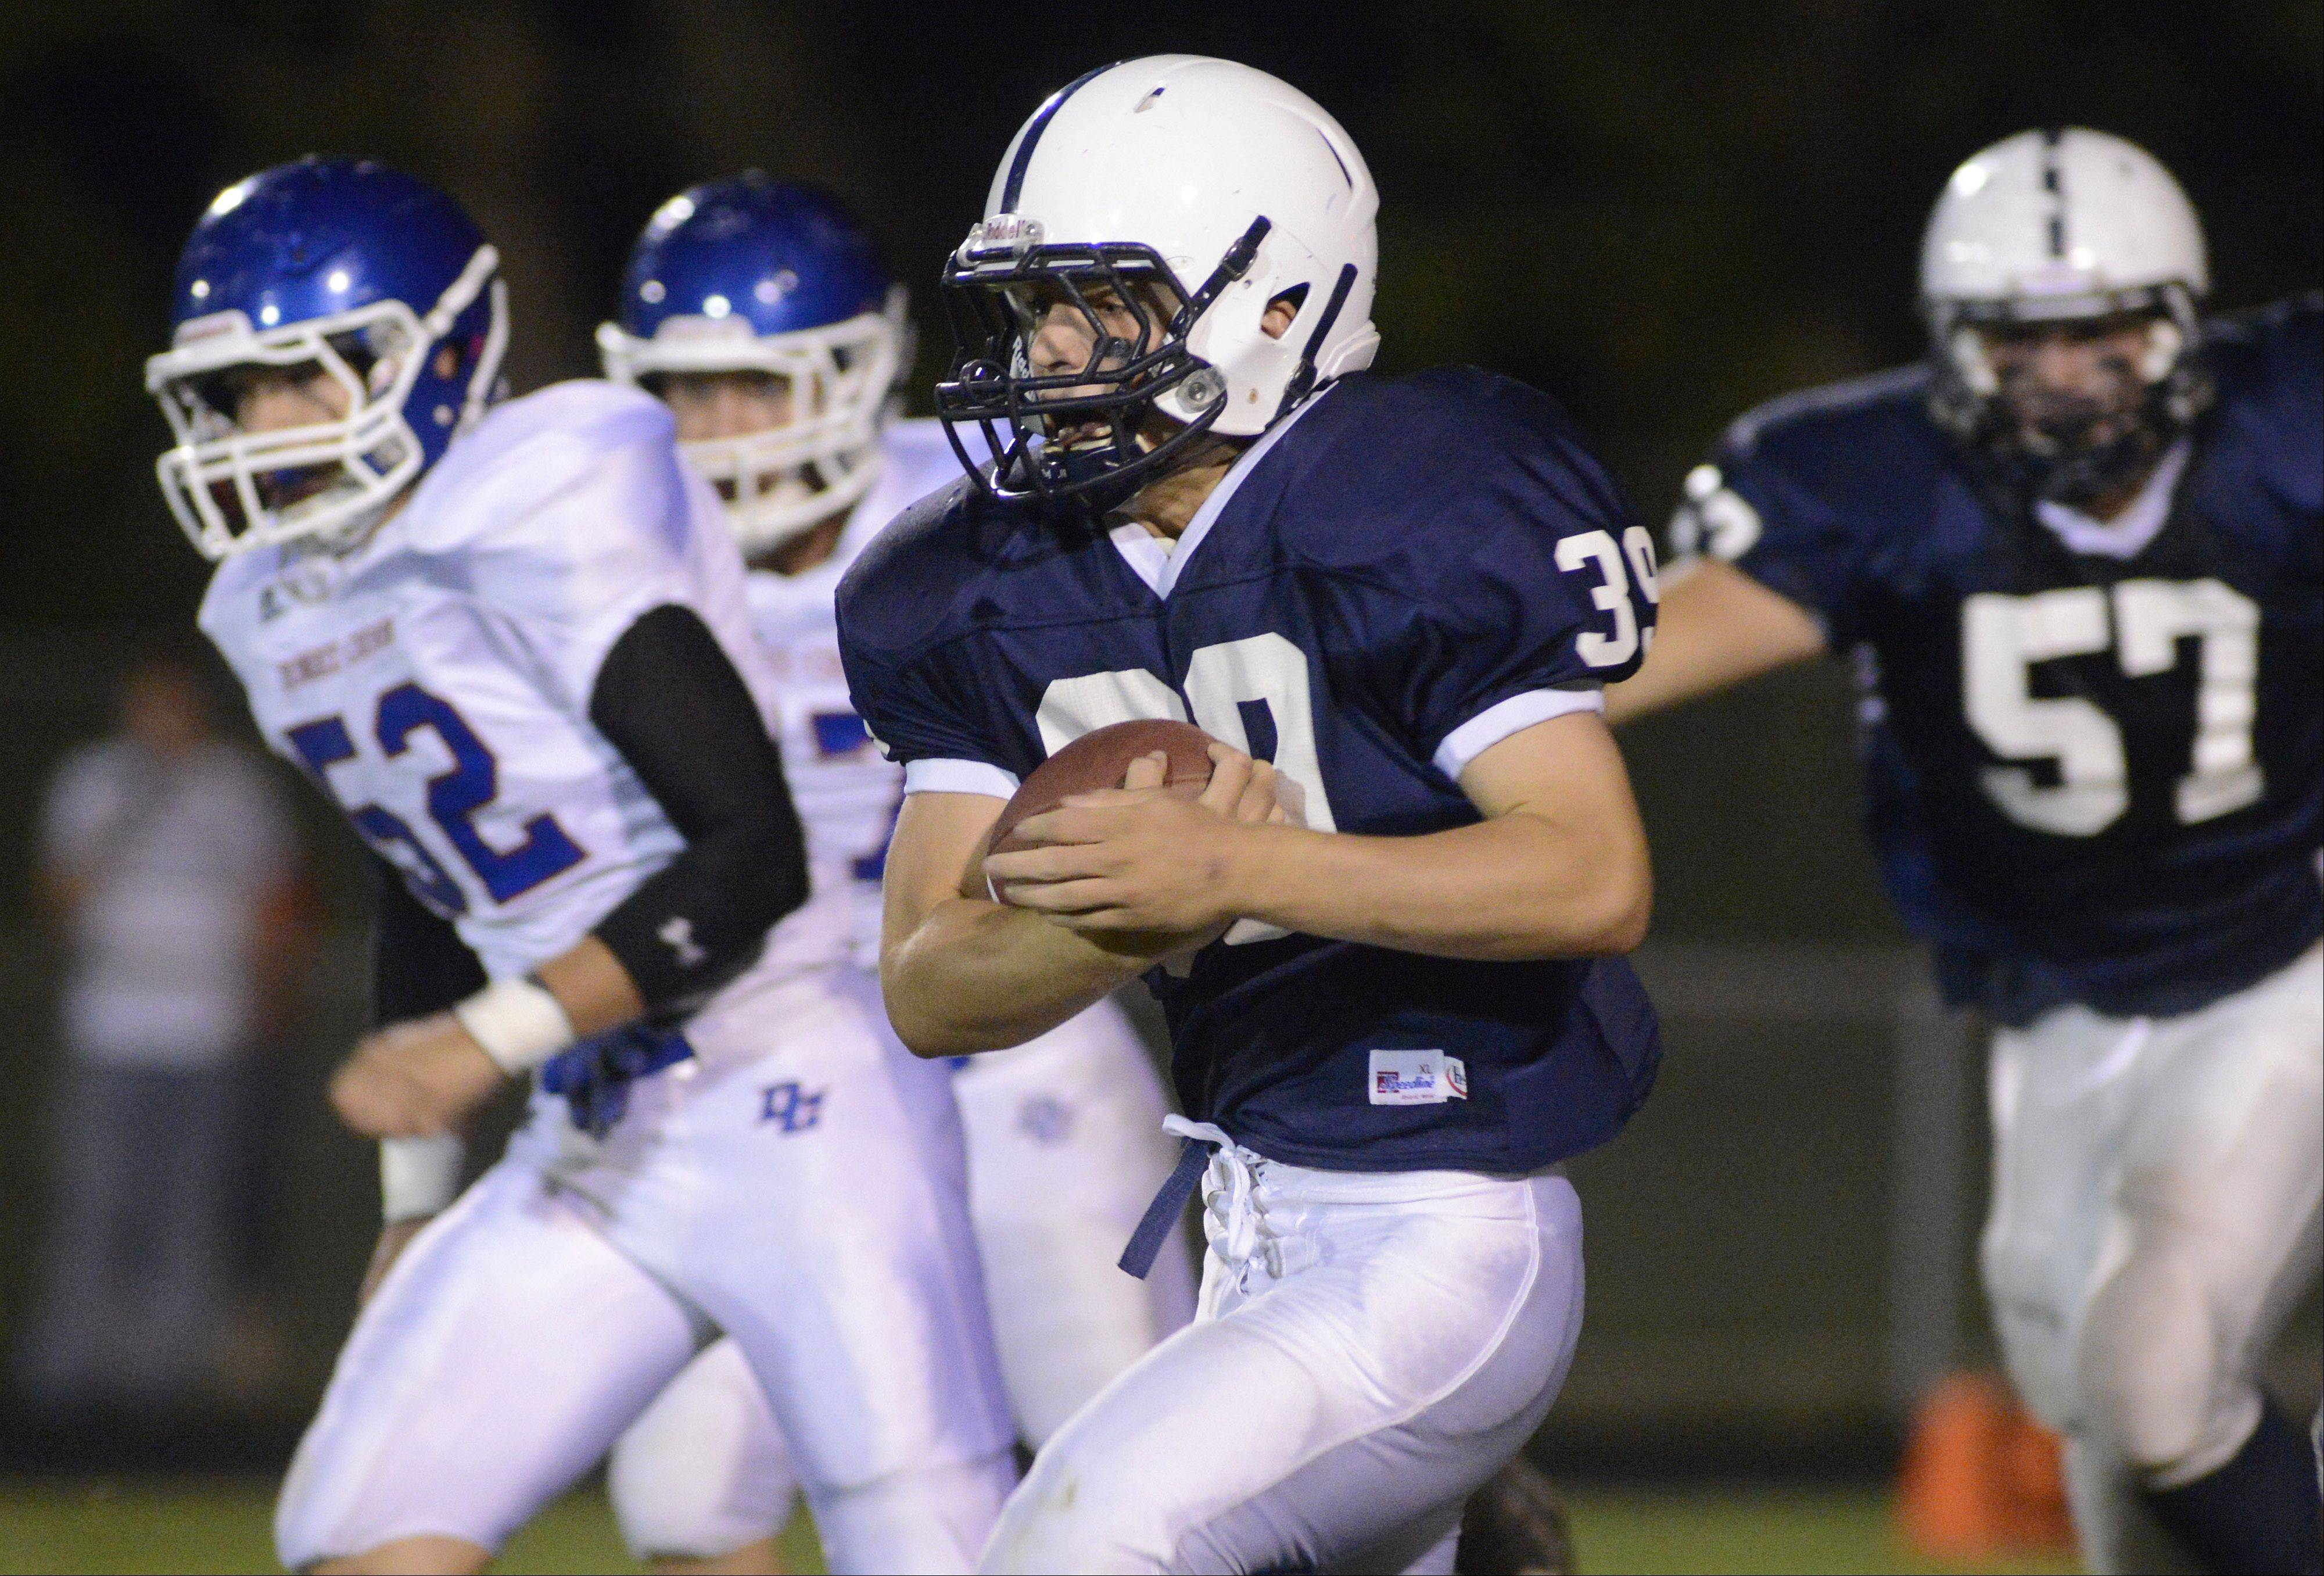 Cary-Grove's Tyler Pennington makes his way down the field in the first quarter.